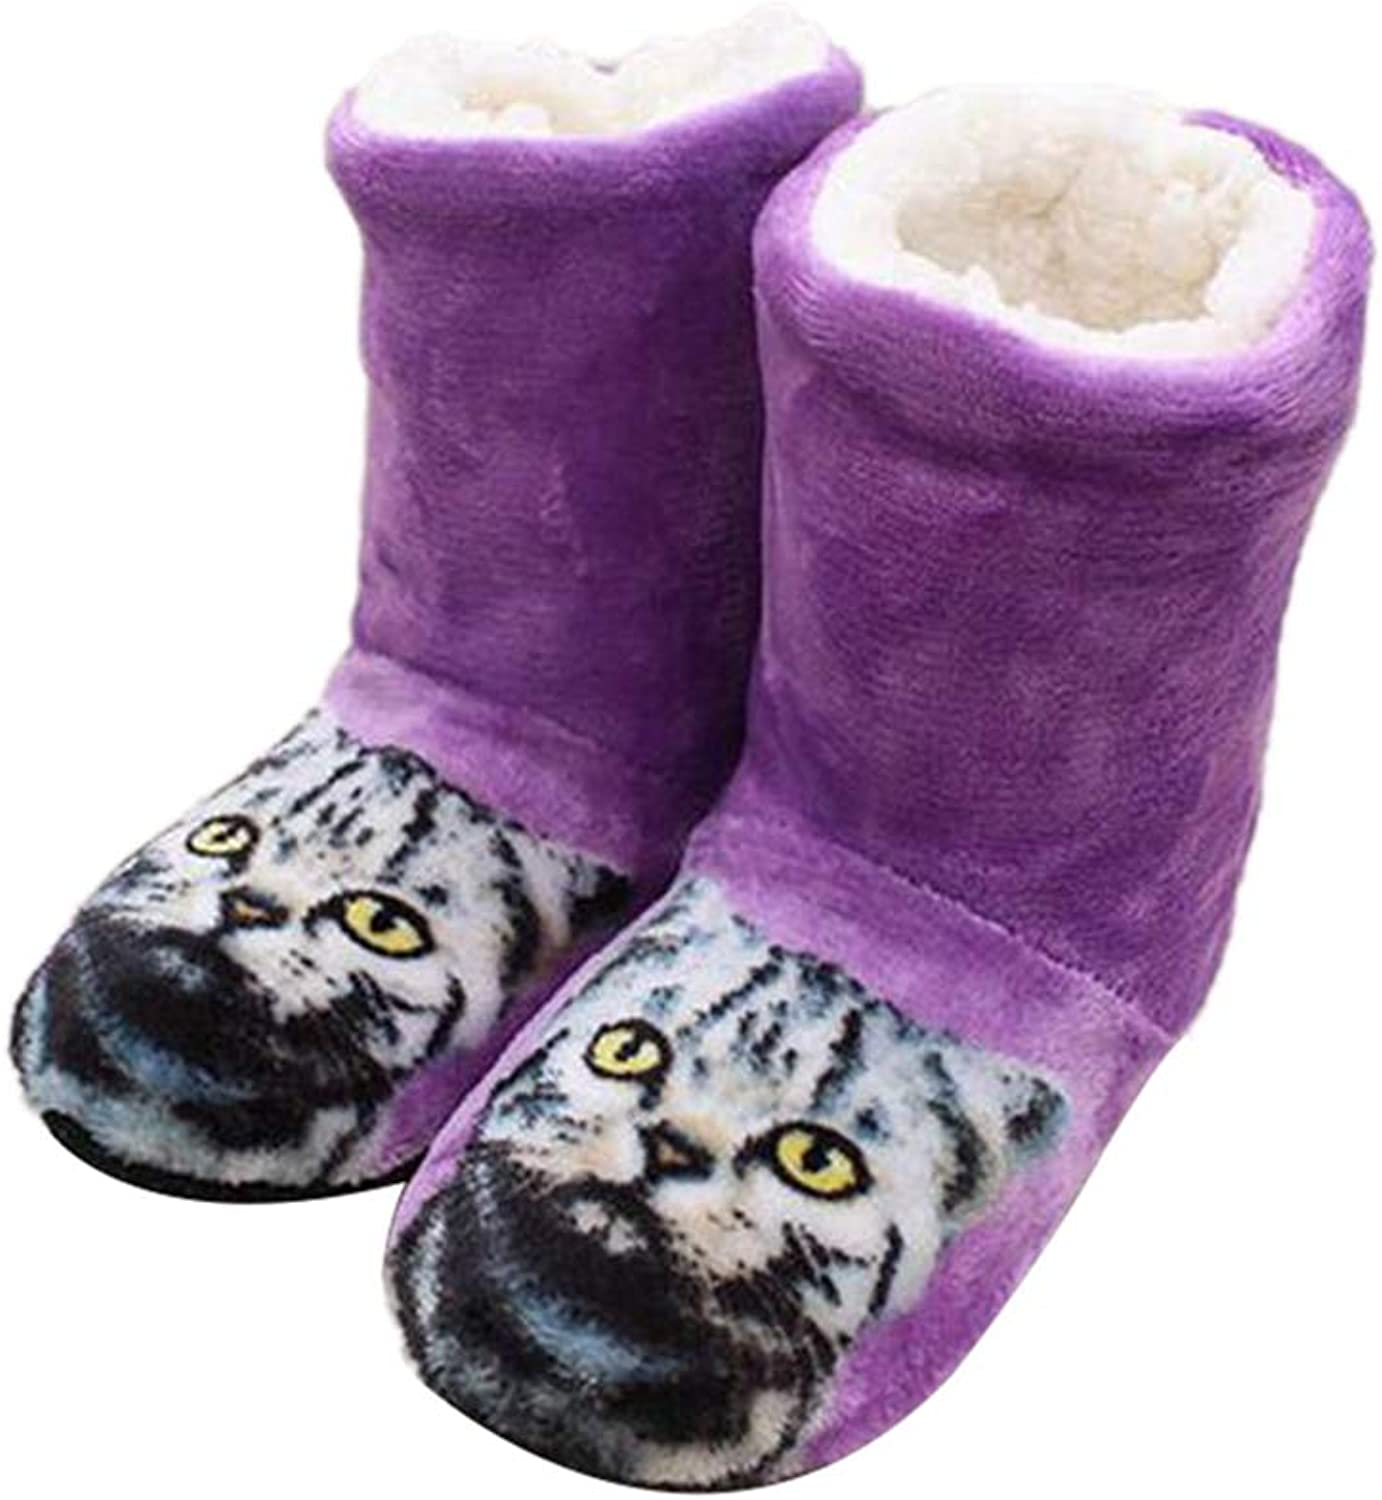 Nafanio Cute Women Girls Boots Slippers Cat Animation Home Winter Warm Cozy Fluffy Soft Cotton Indoor House shoes